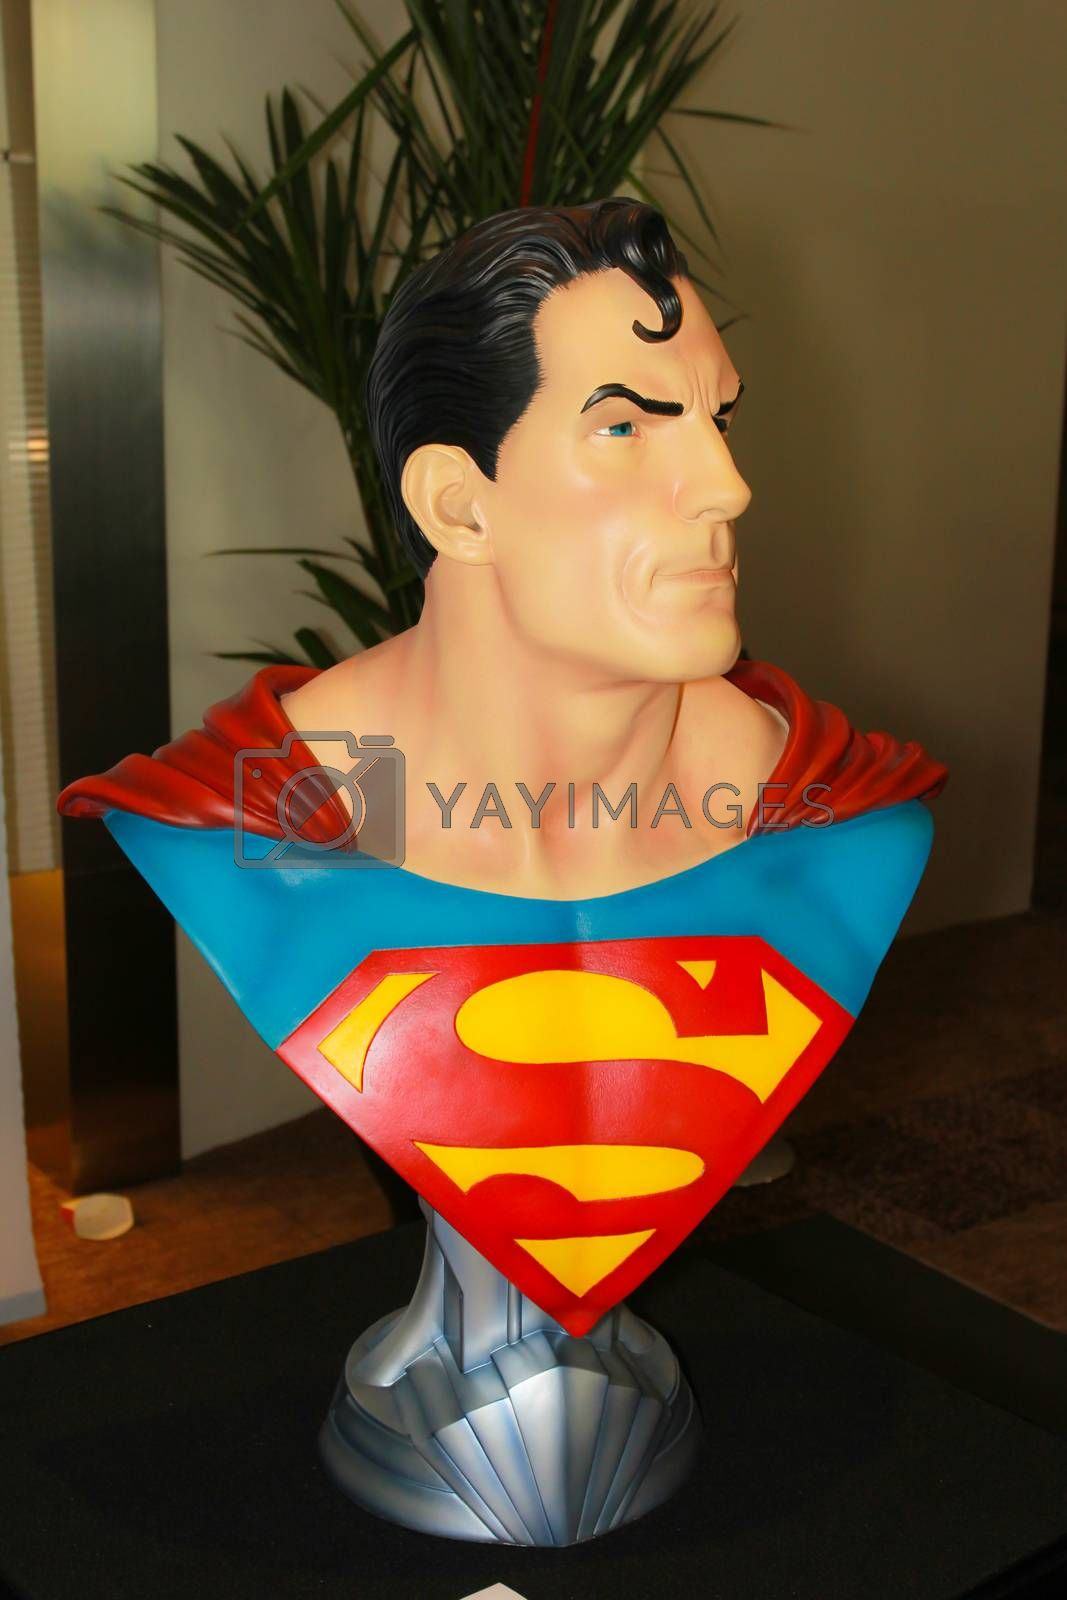 Royalty free image of A model of the character Superman from the movies and comics 2 by redthirteen